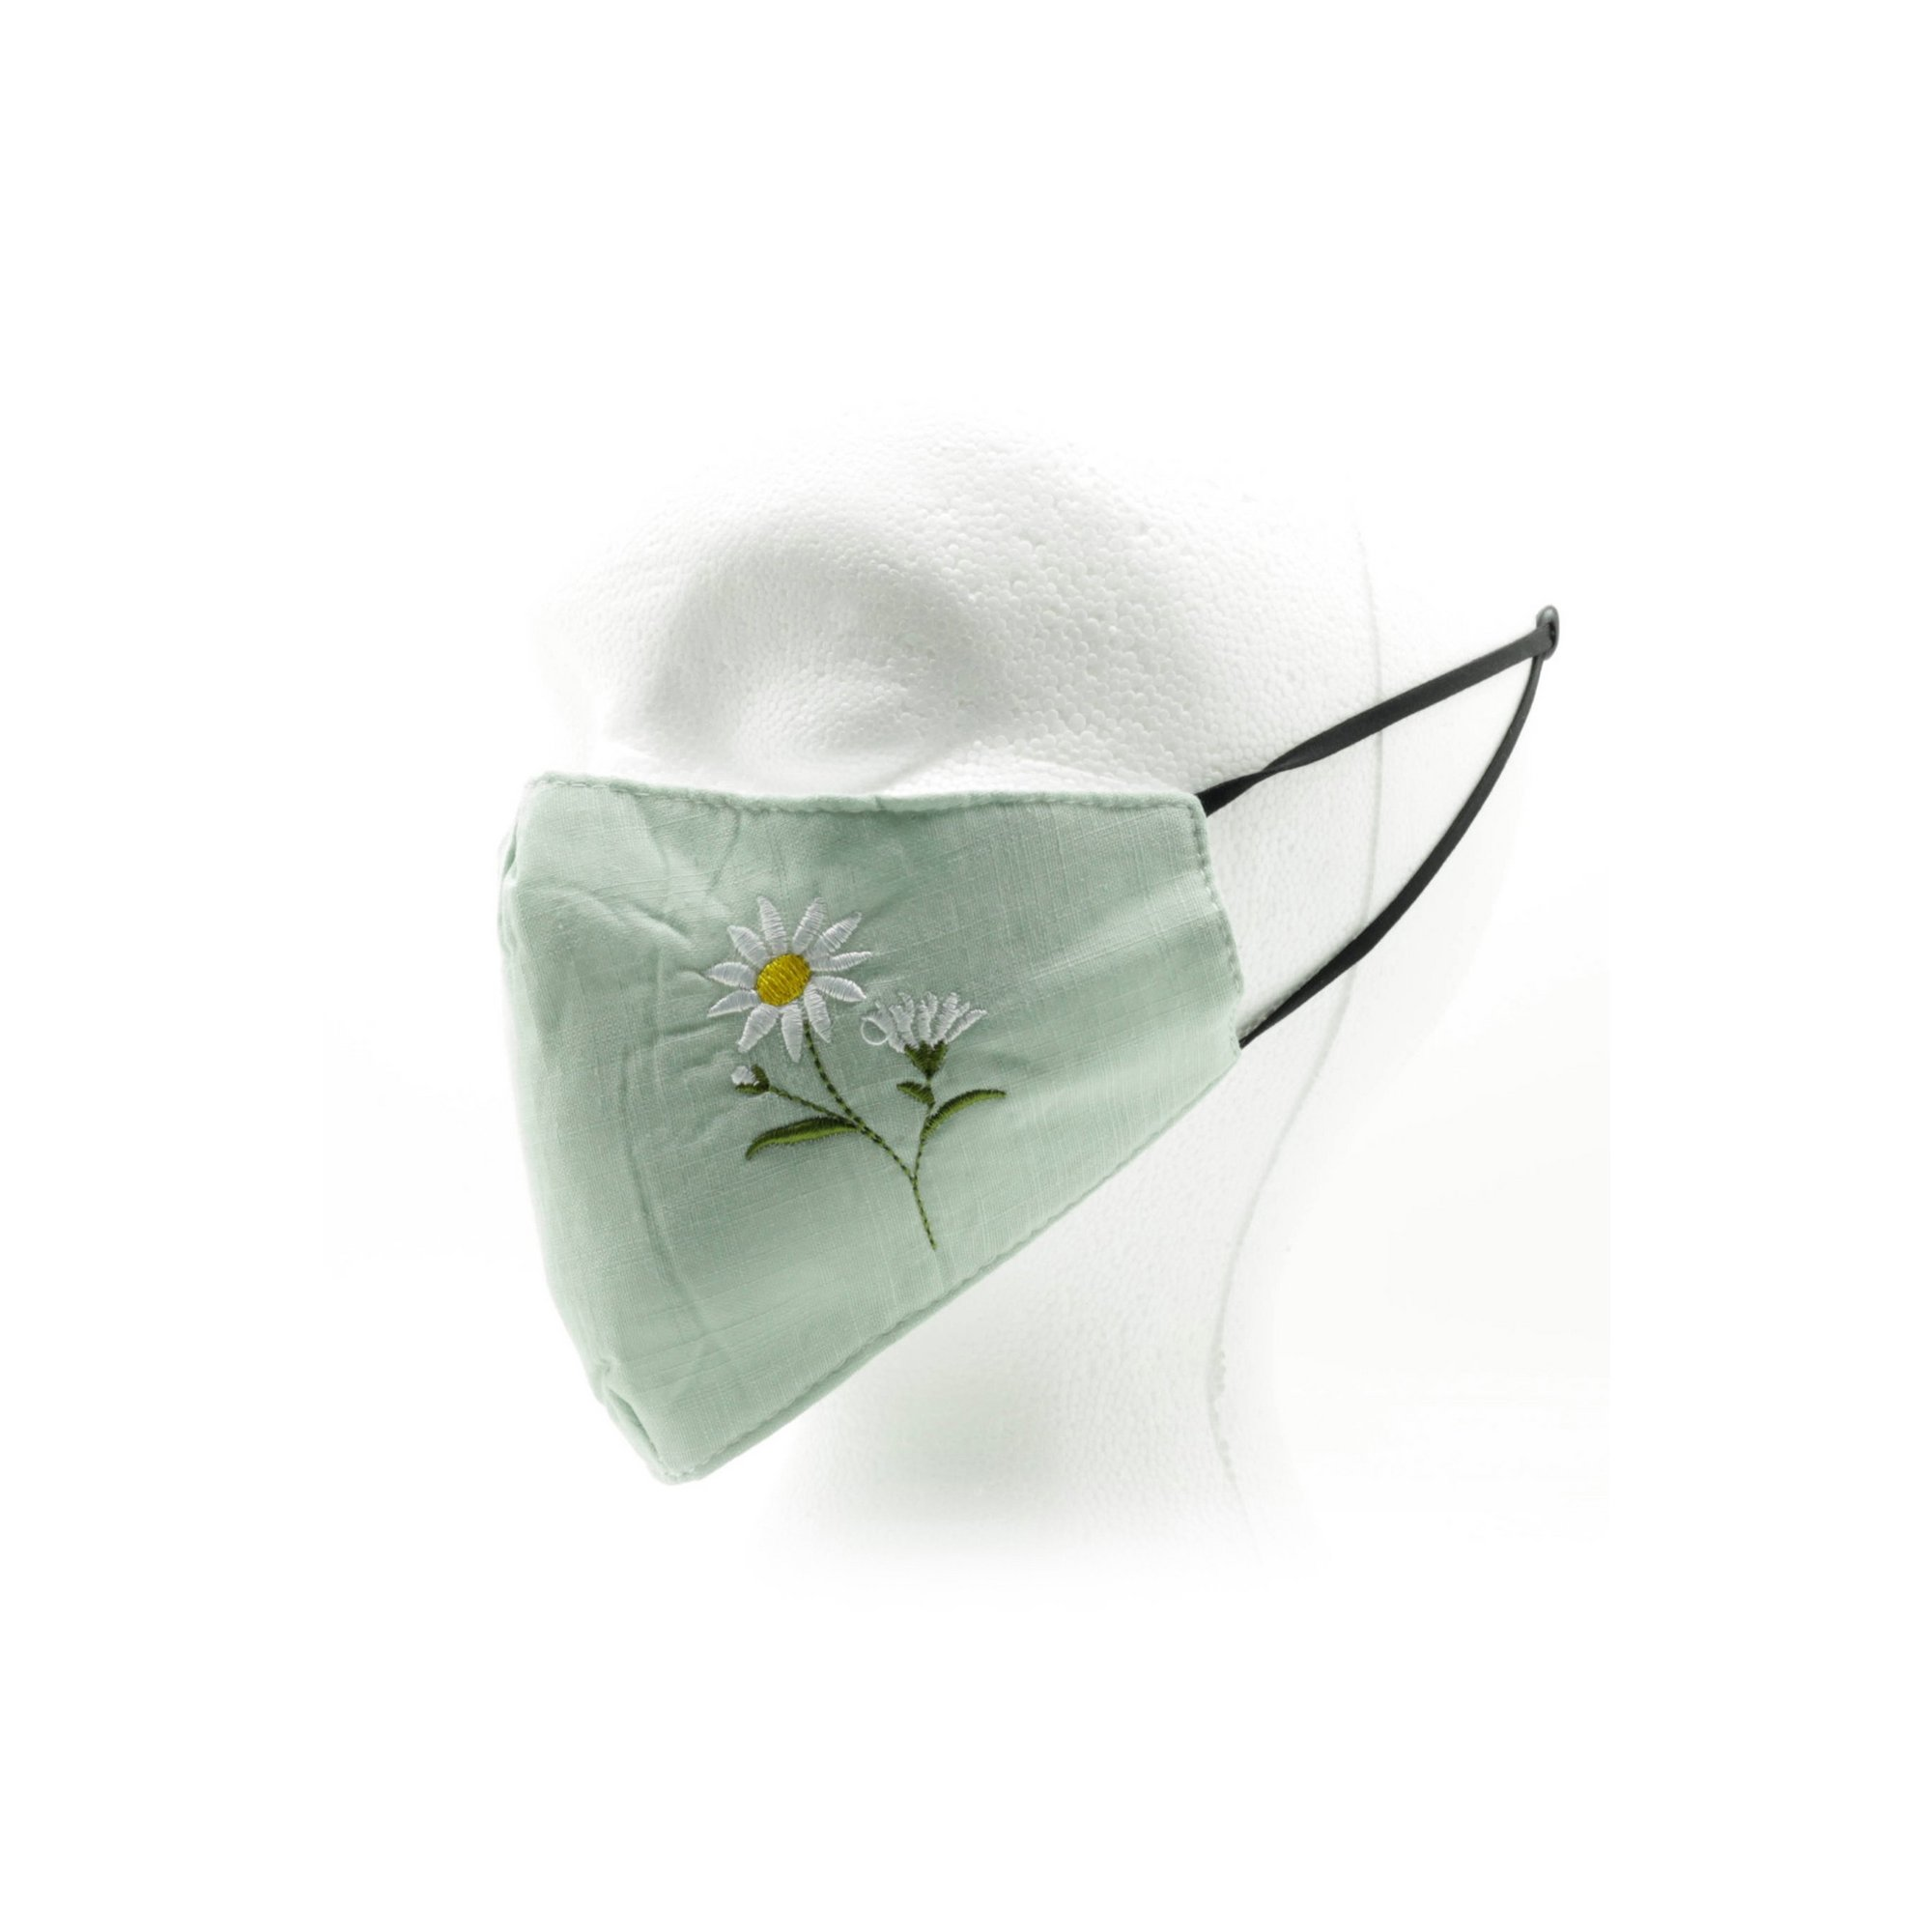 Image of Adult Embroidered Floral Reusable Face Mask